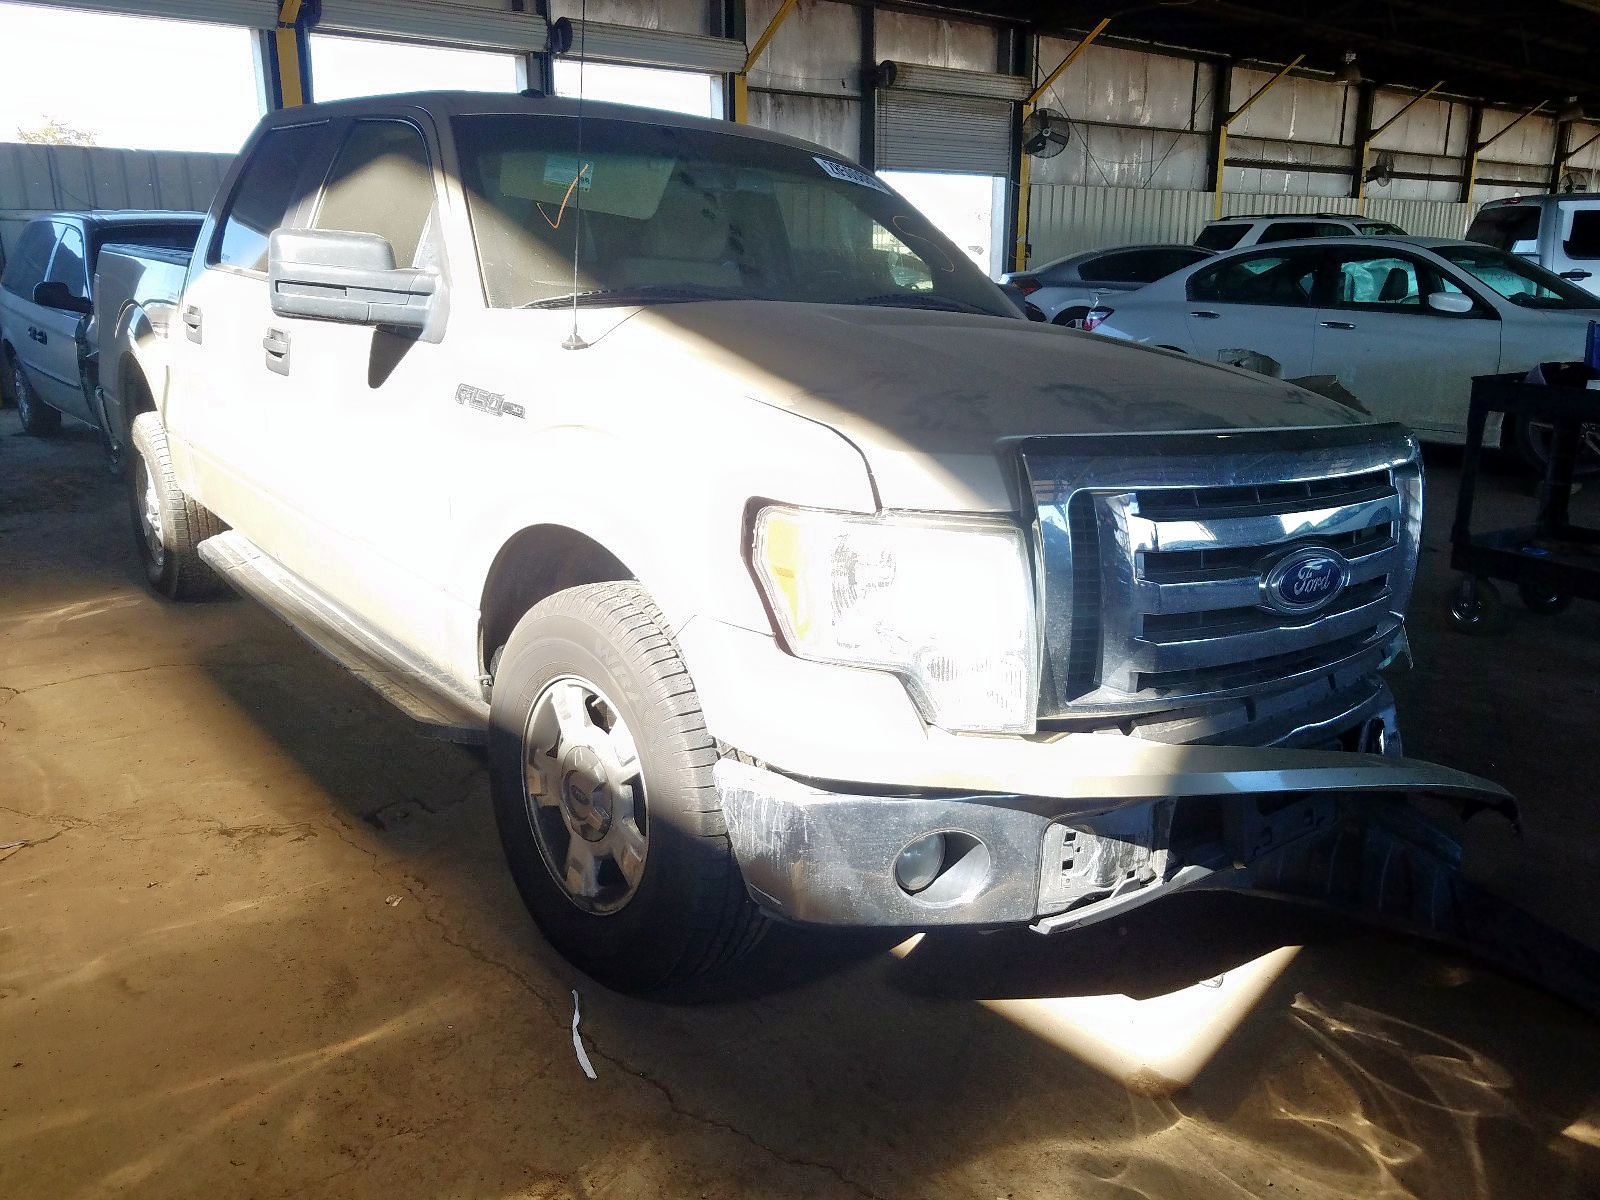 1FTFW1CV8AFC06848 - 2010 Ford F150 Super 5.4L Left View